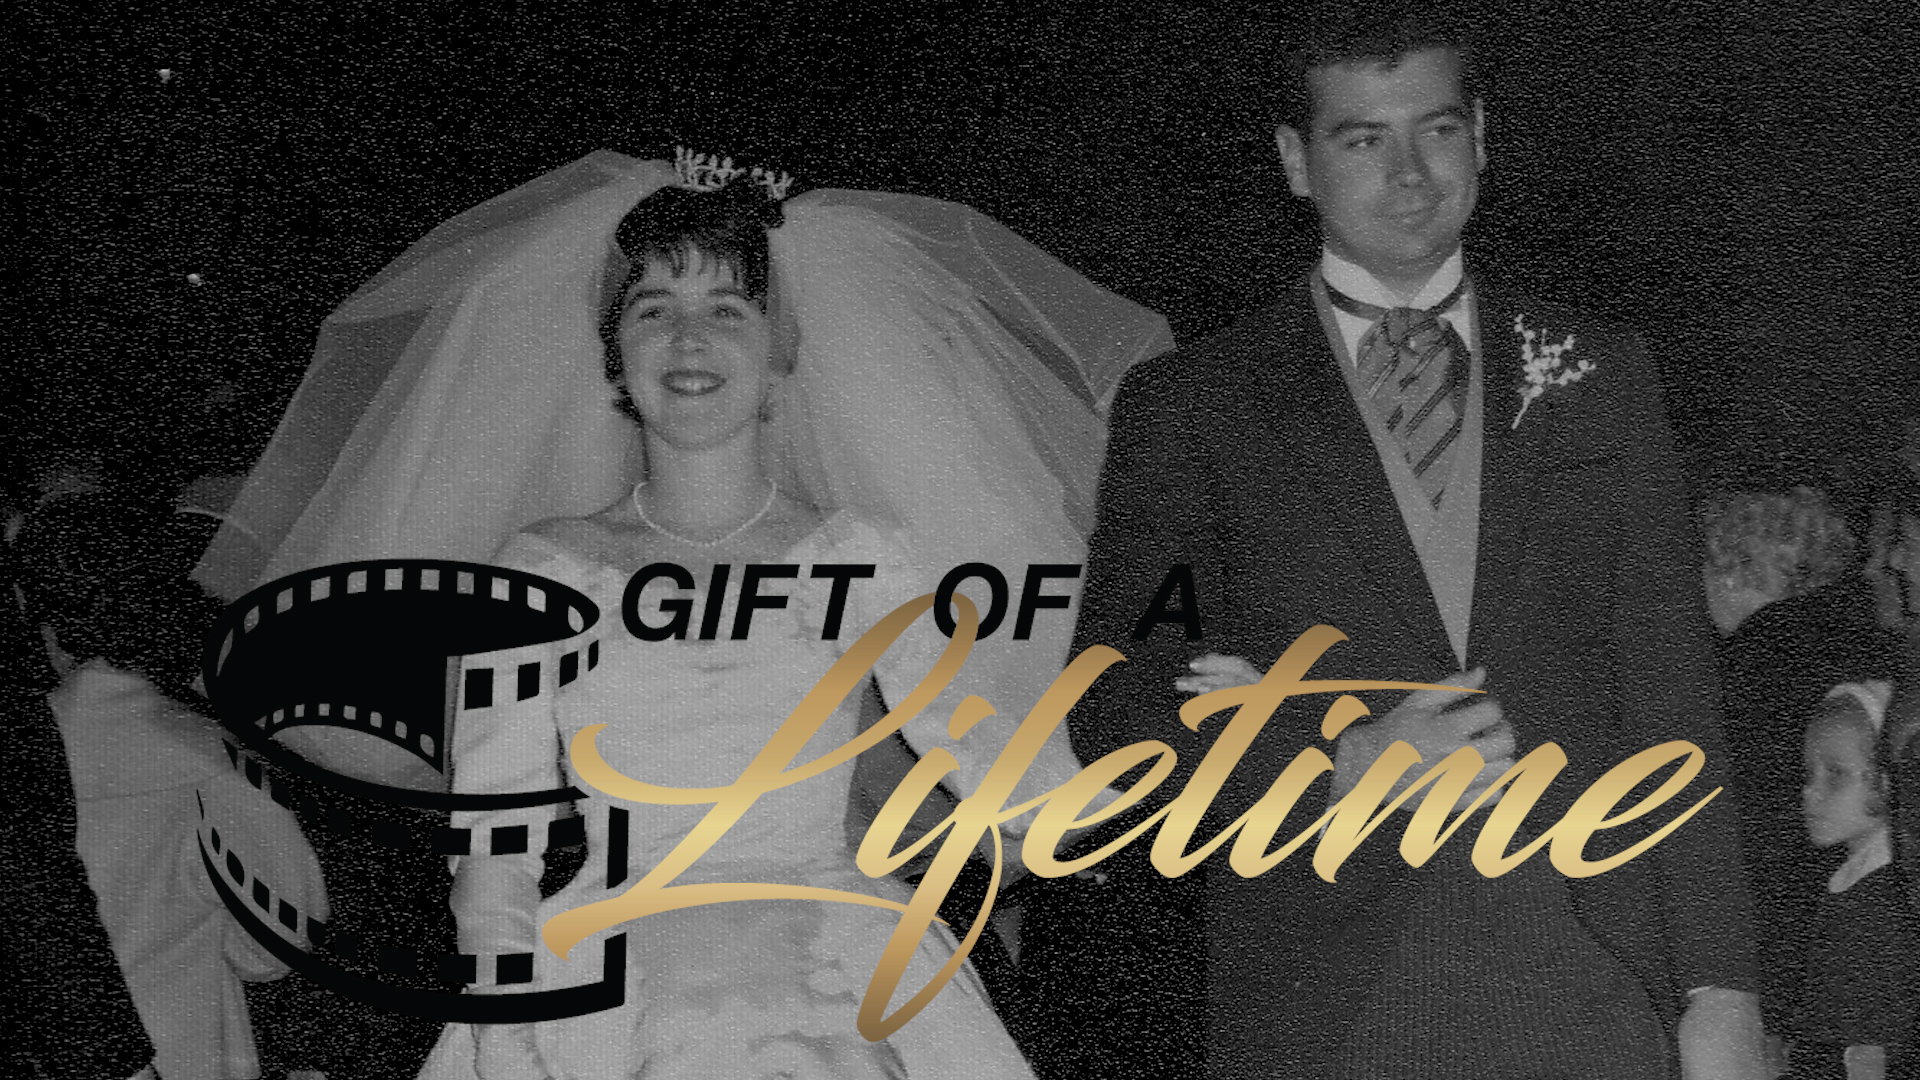 GIFT OF A LIFETIME SHORTS - JOHN & MAUREEN MURRAY - WEDDING